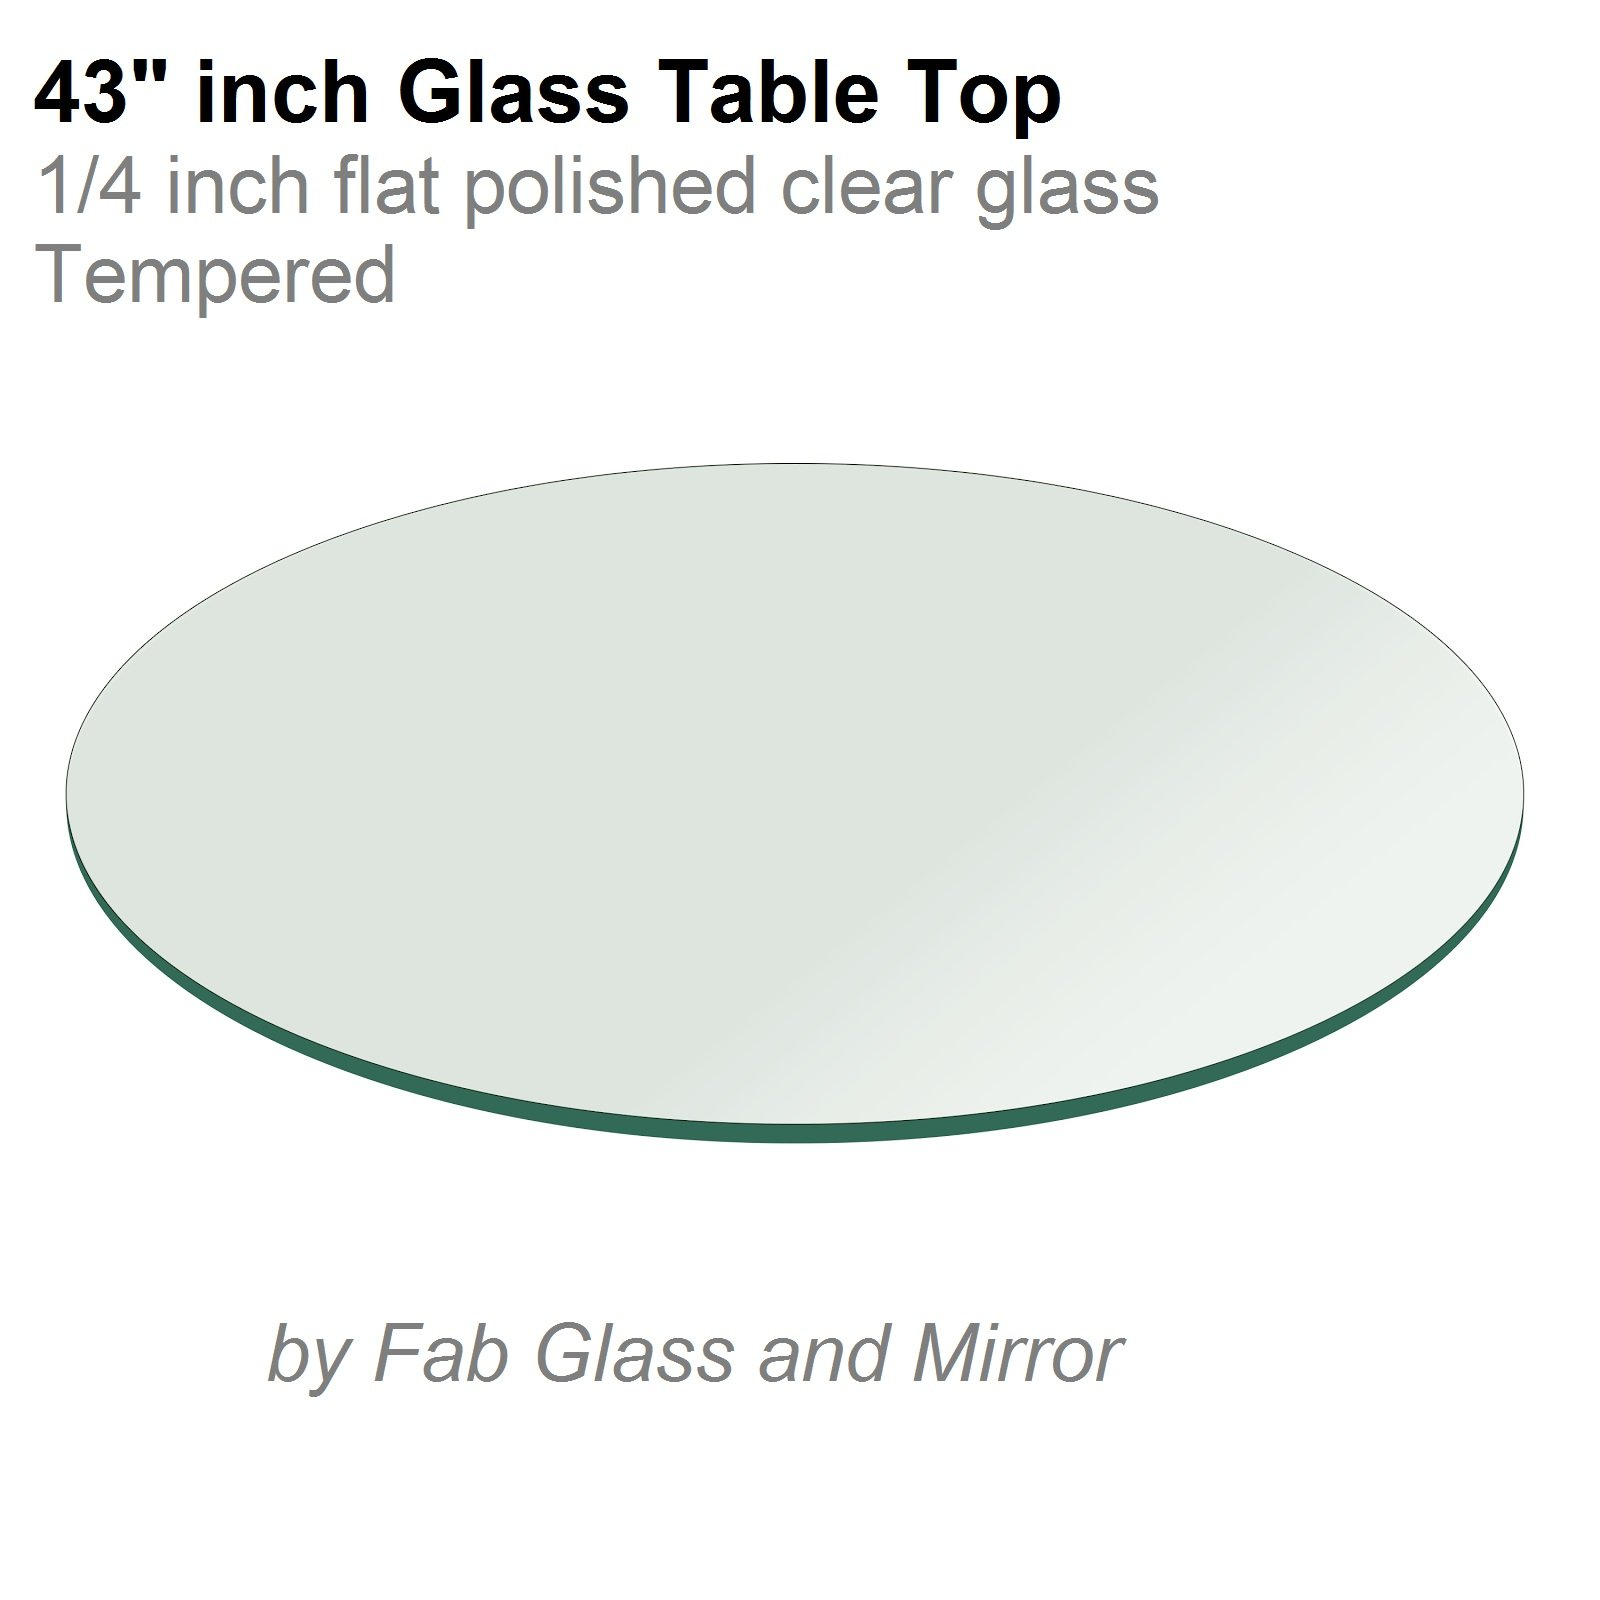 43'' Inch Round Glass Table Top 1/4'' Thick Flat Polish Edge Tempered by Fab Glass and Mirror